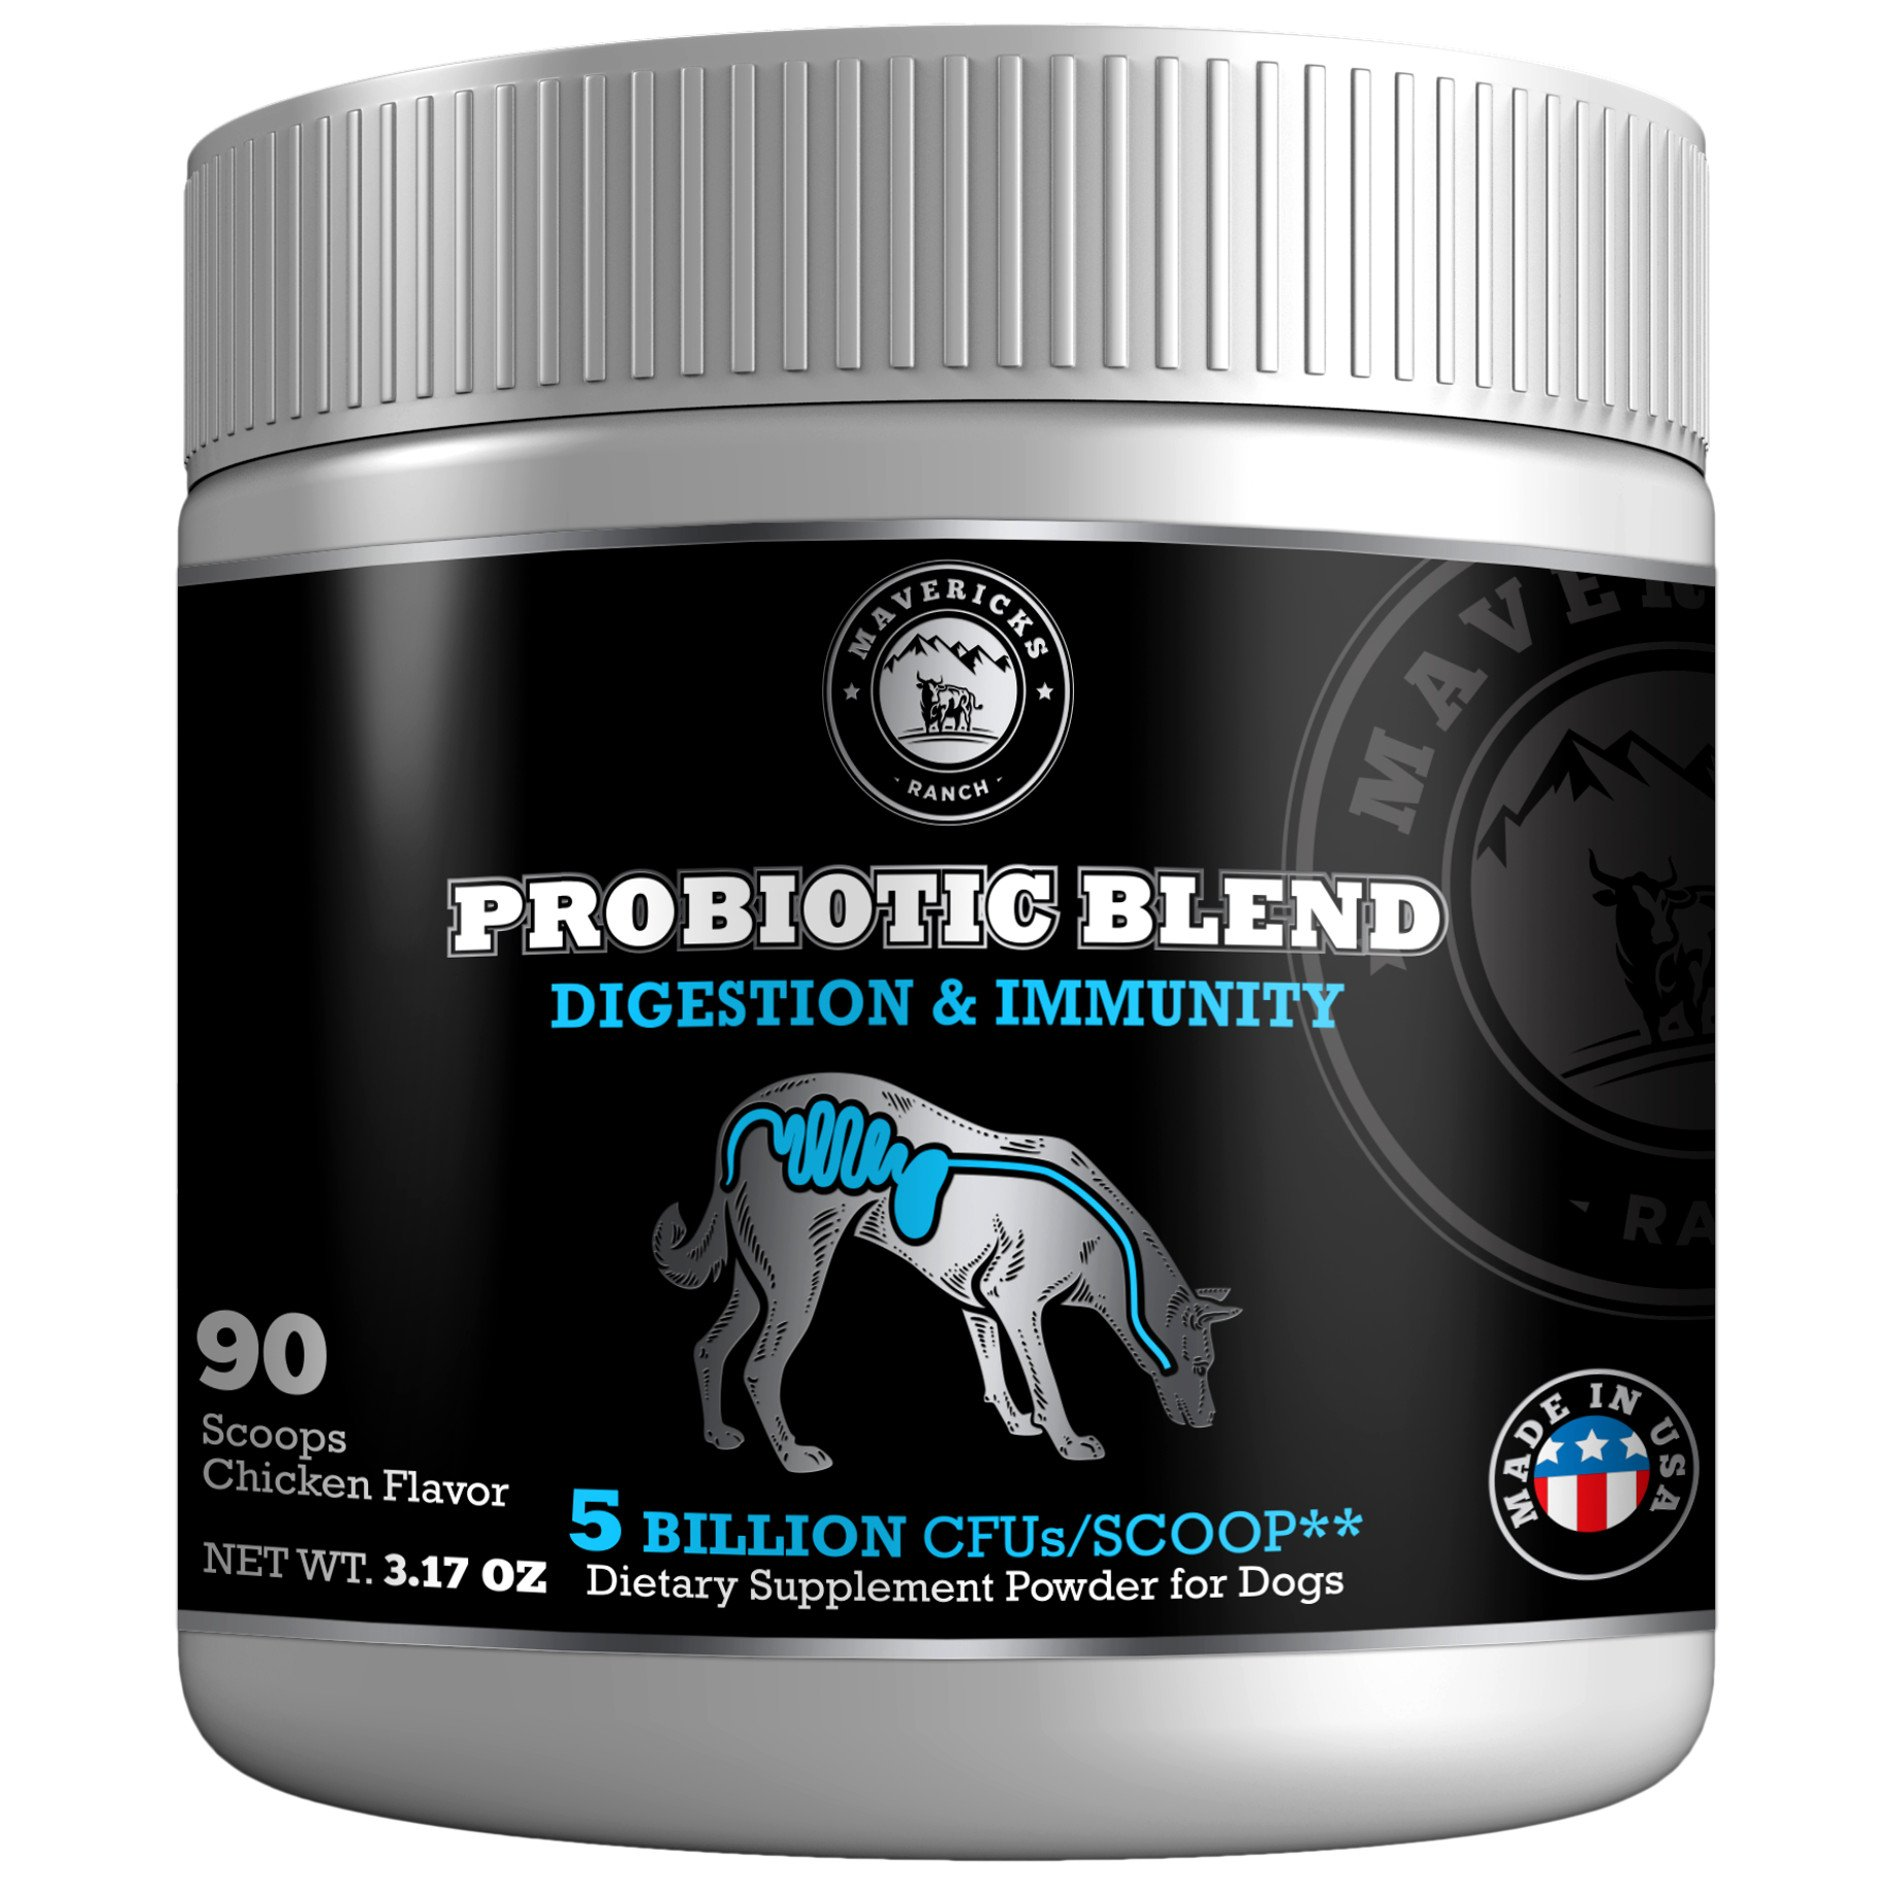 Mavericks Ranch Probiotics For Dogs | 9 Canine Friendly Strains | 5 Billion CFUs/Scoop | Unique Gut Flora Digestive Enzymes Powder | 30-90 Day Support | 100% Natural Pet Supplement & Made In USA |